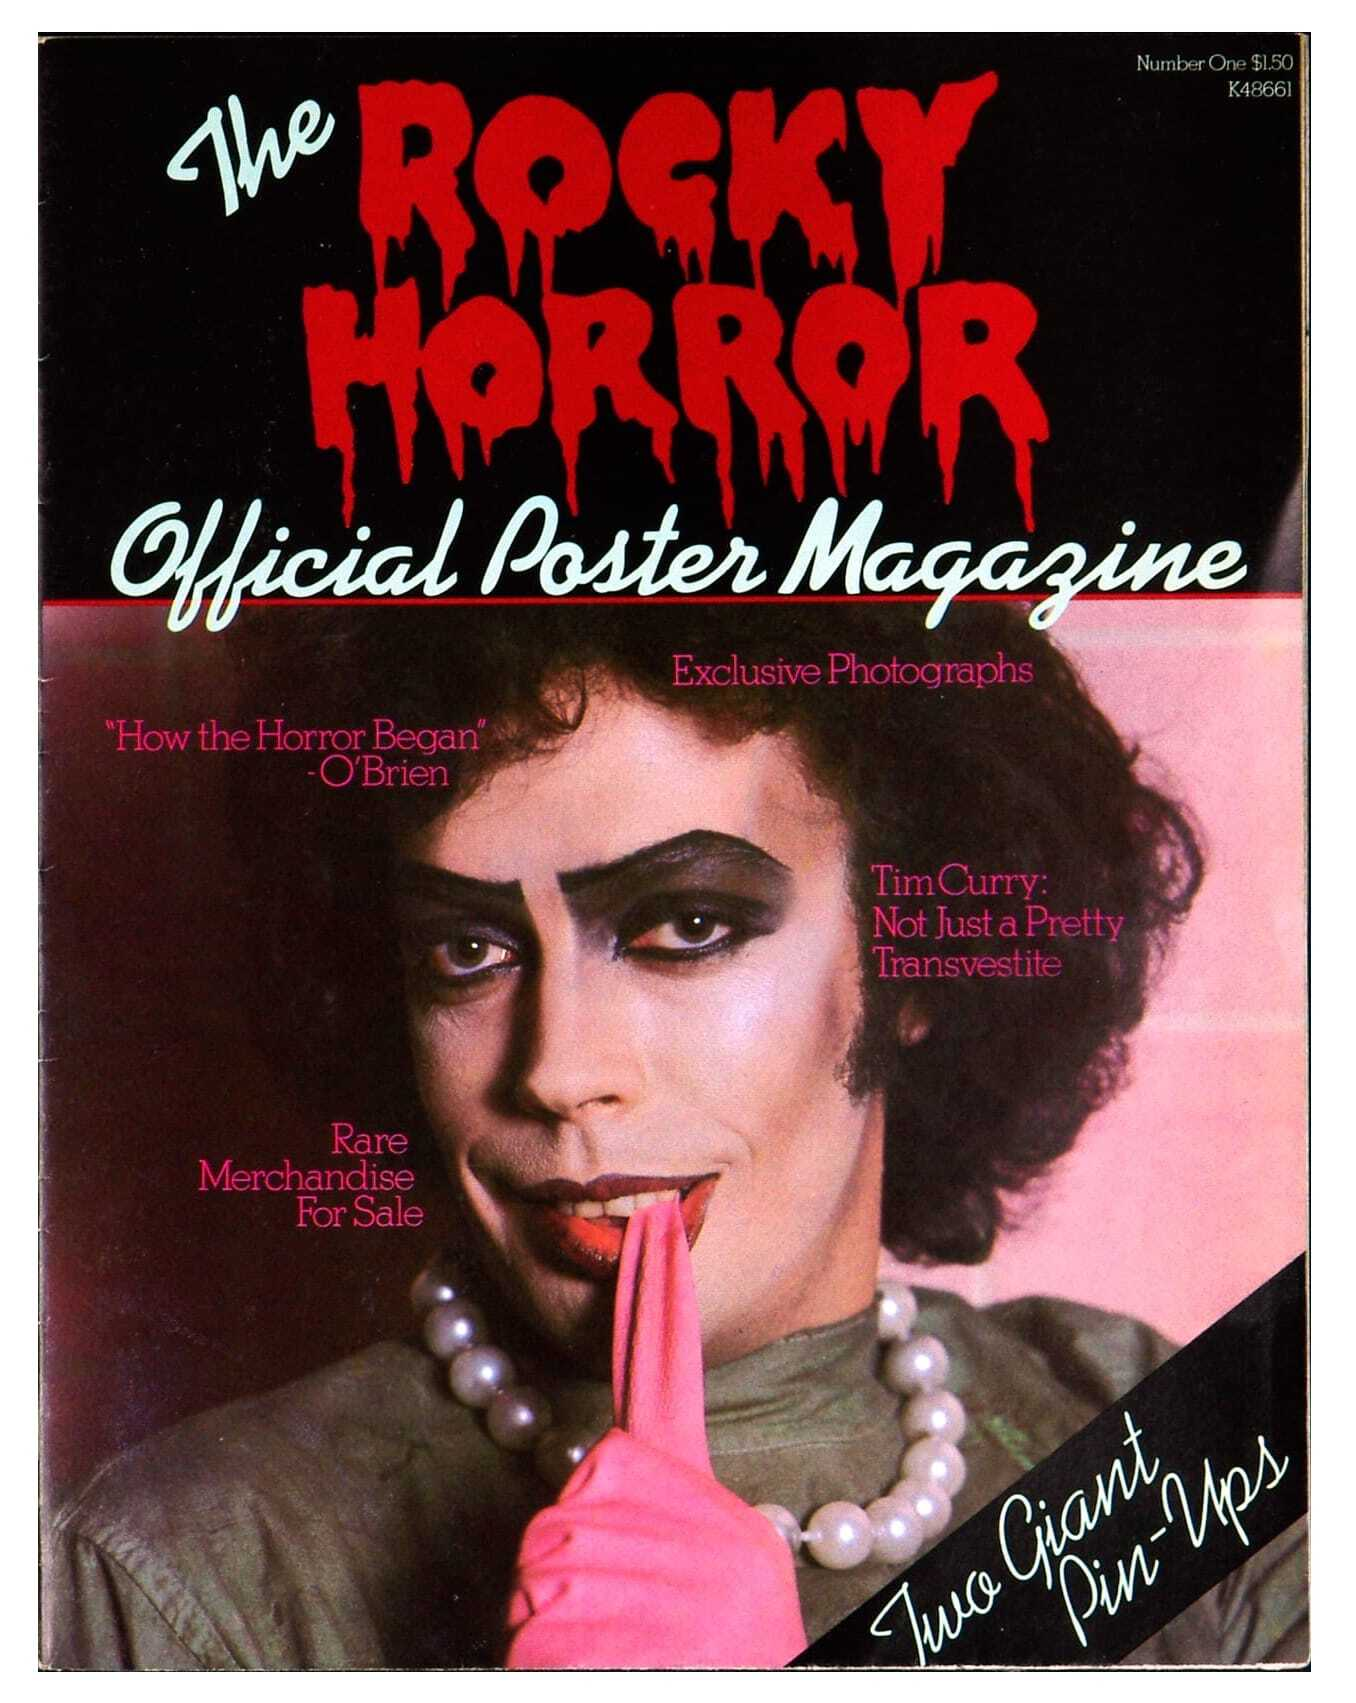 Rocky Horror Poster Official Magazine 1979